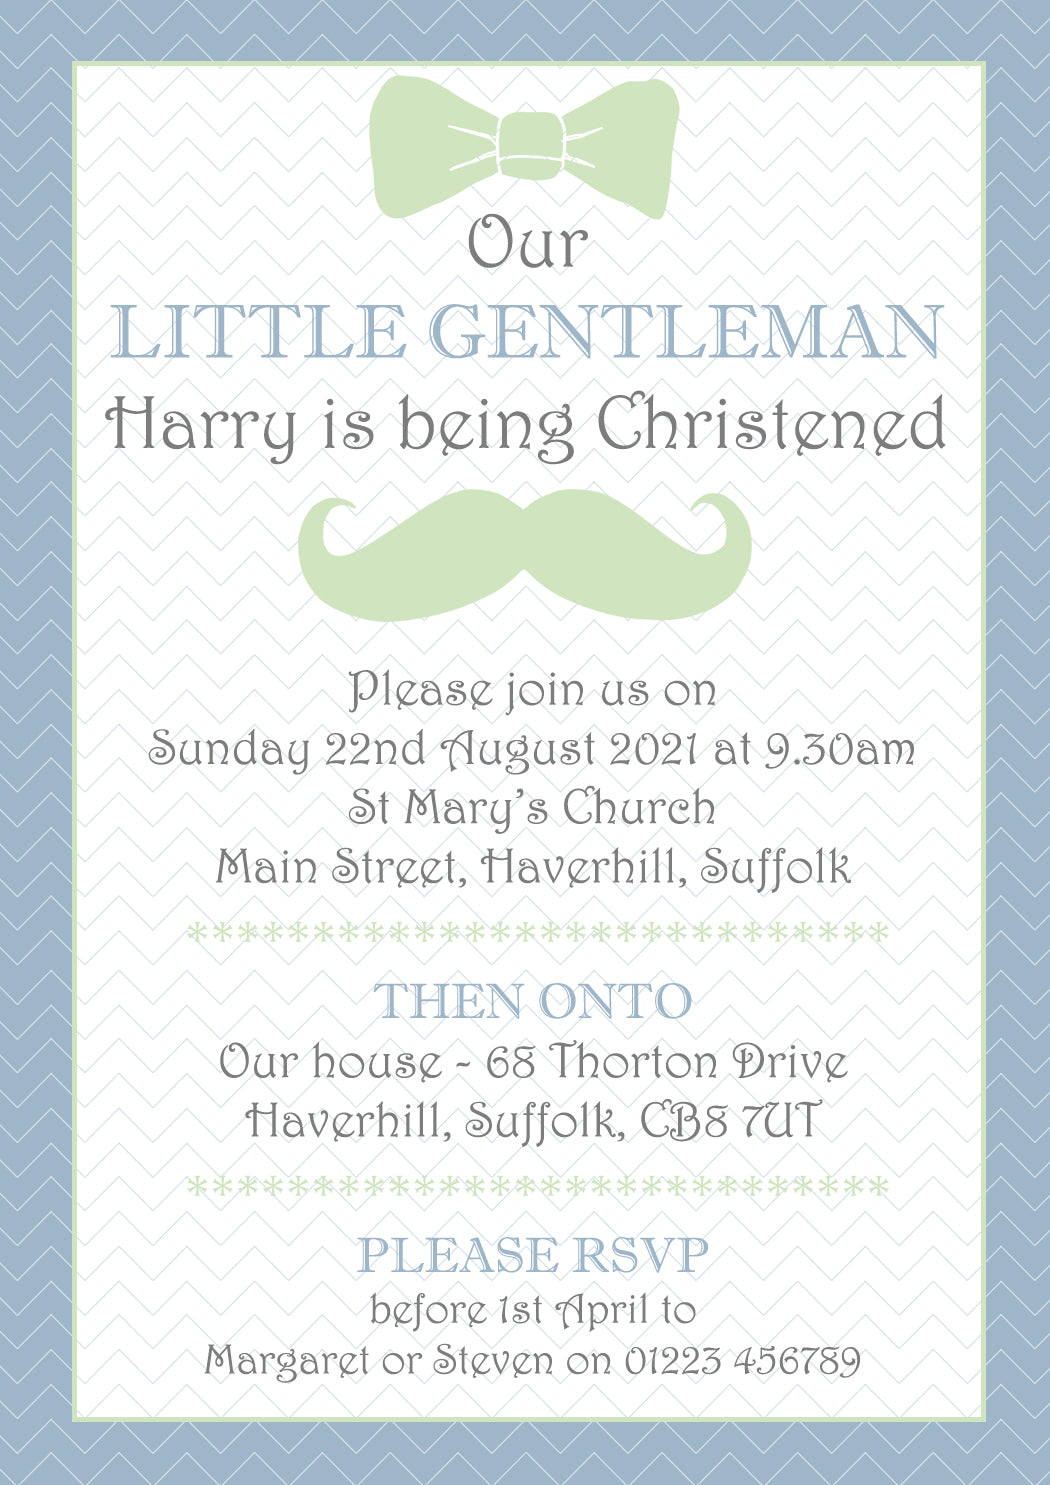 Our Little Lady Gentleman - Christening Invitations Joint Boy Girl ...